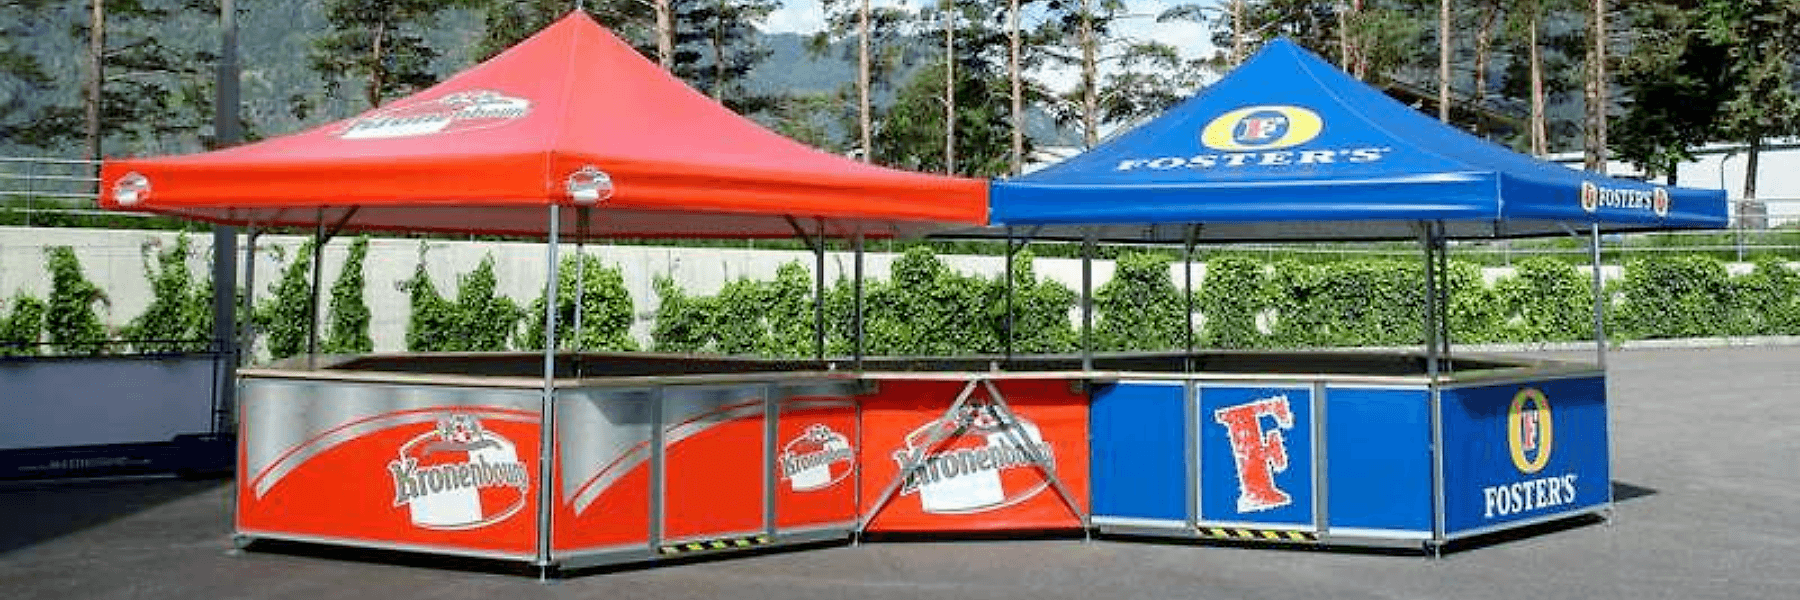 <p>Event, Mobile &amp; Stadia Bars &#8211; Tents &amp; Marquees &#8211; Hexagonal Pavilion</p> <p>&nbsp;</p> <p>Outdoor Event Bar – Fosters &amp; Kronenbourg including joining kit, which enables 2 hexagonal or 2 octagonal bars to be linked together.</p> <p>&nbsp;</p> <p>Hexagonal Pavilion is ideal for serving Drinks, Food and can be used as a retail sales and promotion stand for selling merchandise at music concerts.</p>